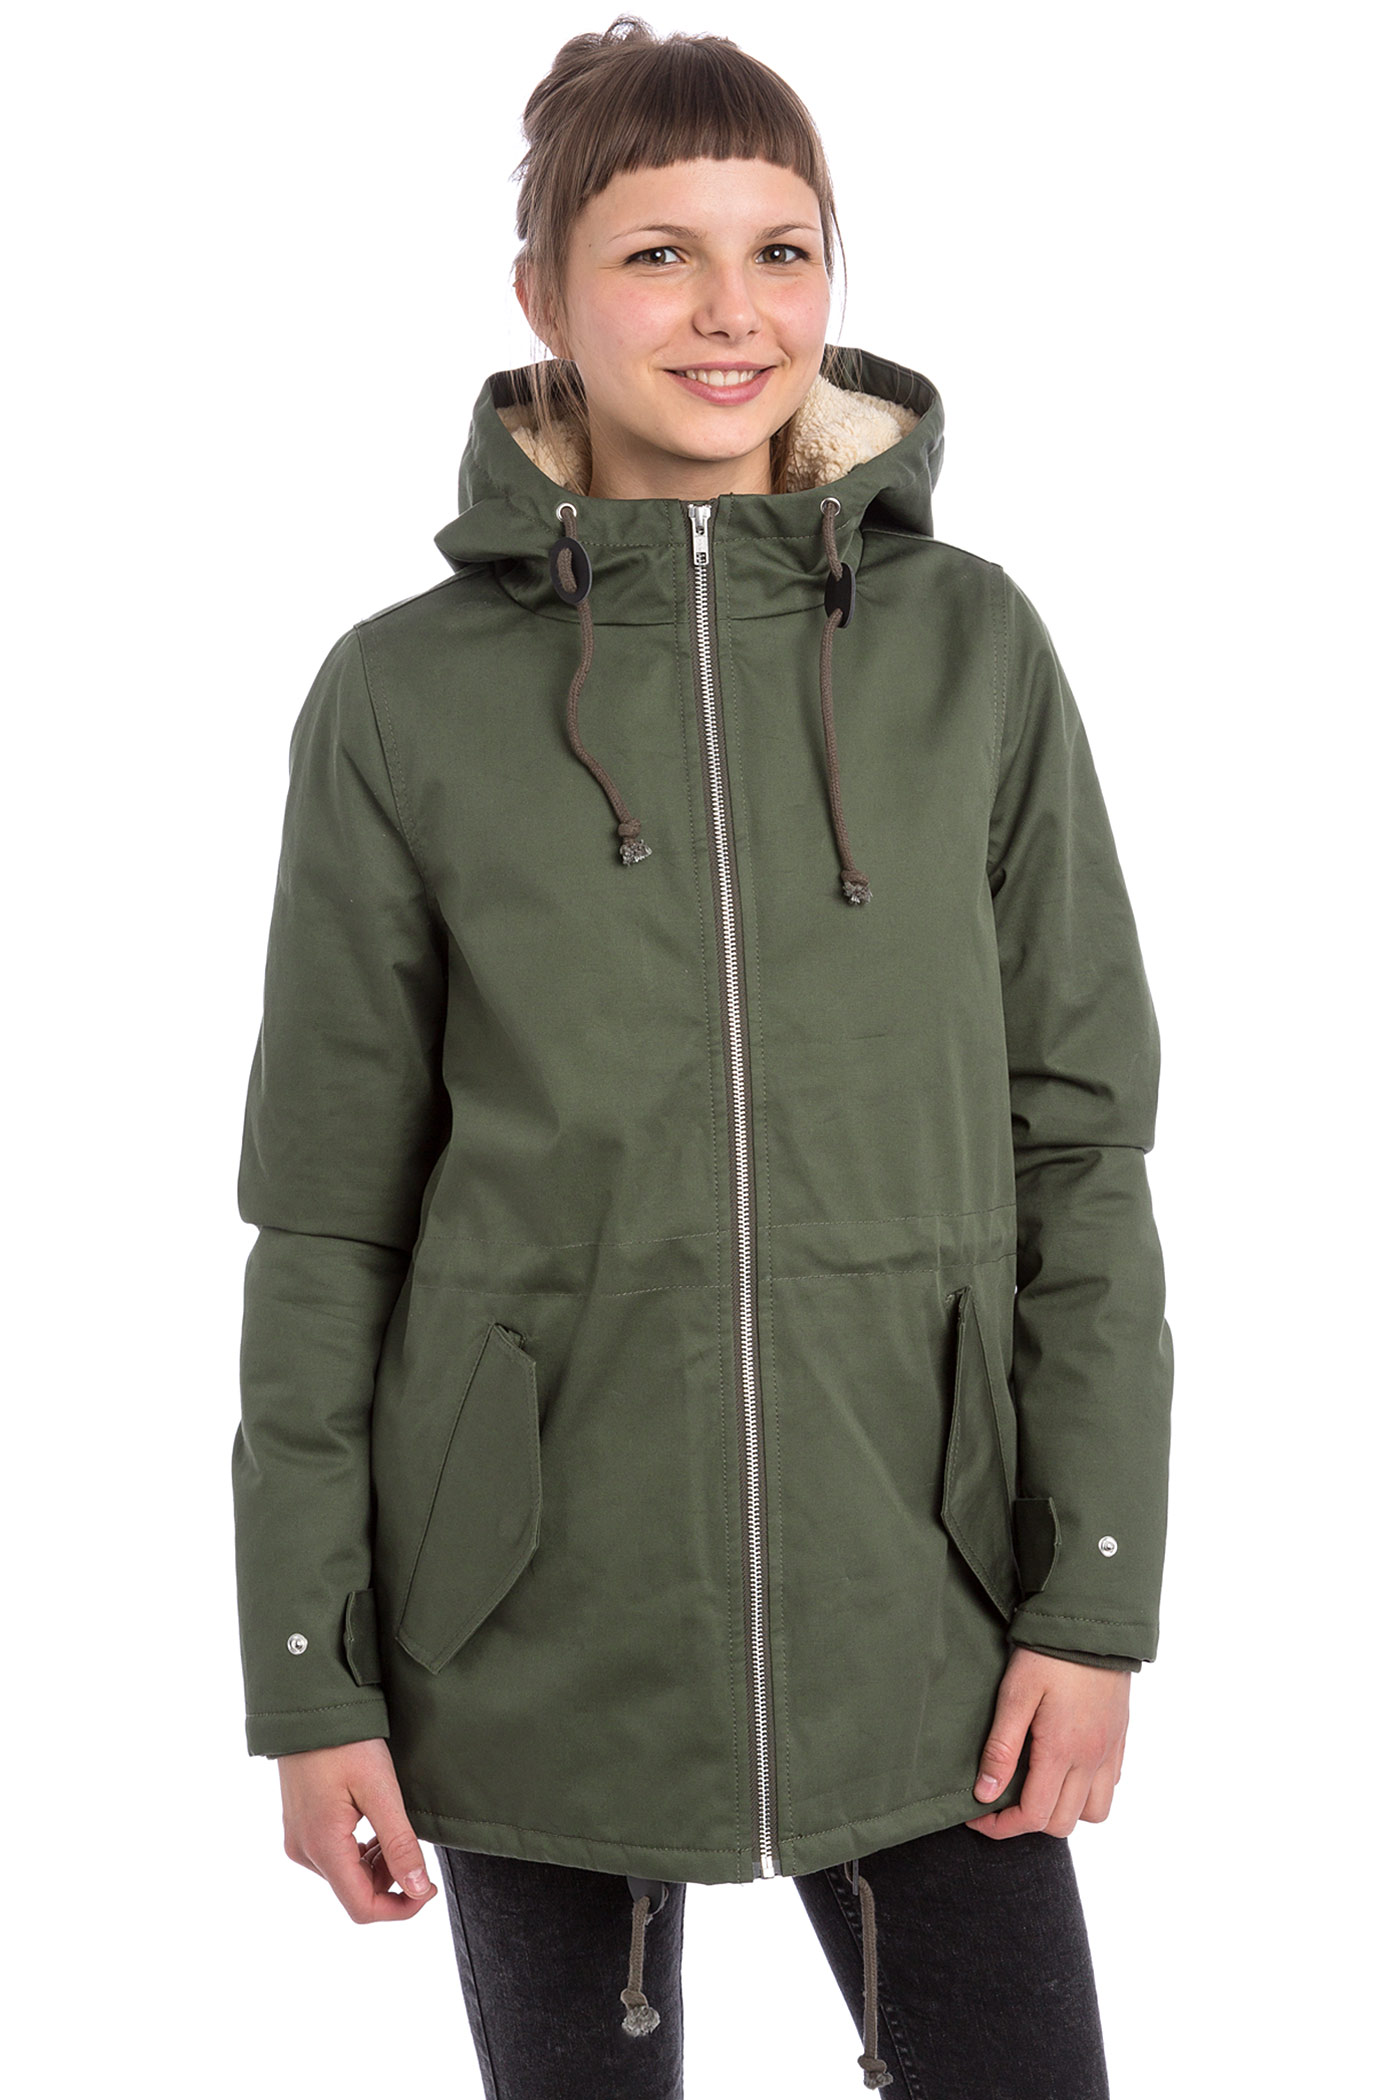 Wemoto Ella Parka Jacket women (olive) buy at skatedeluxe